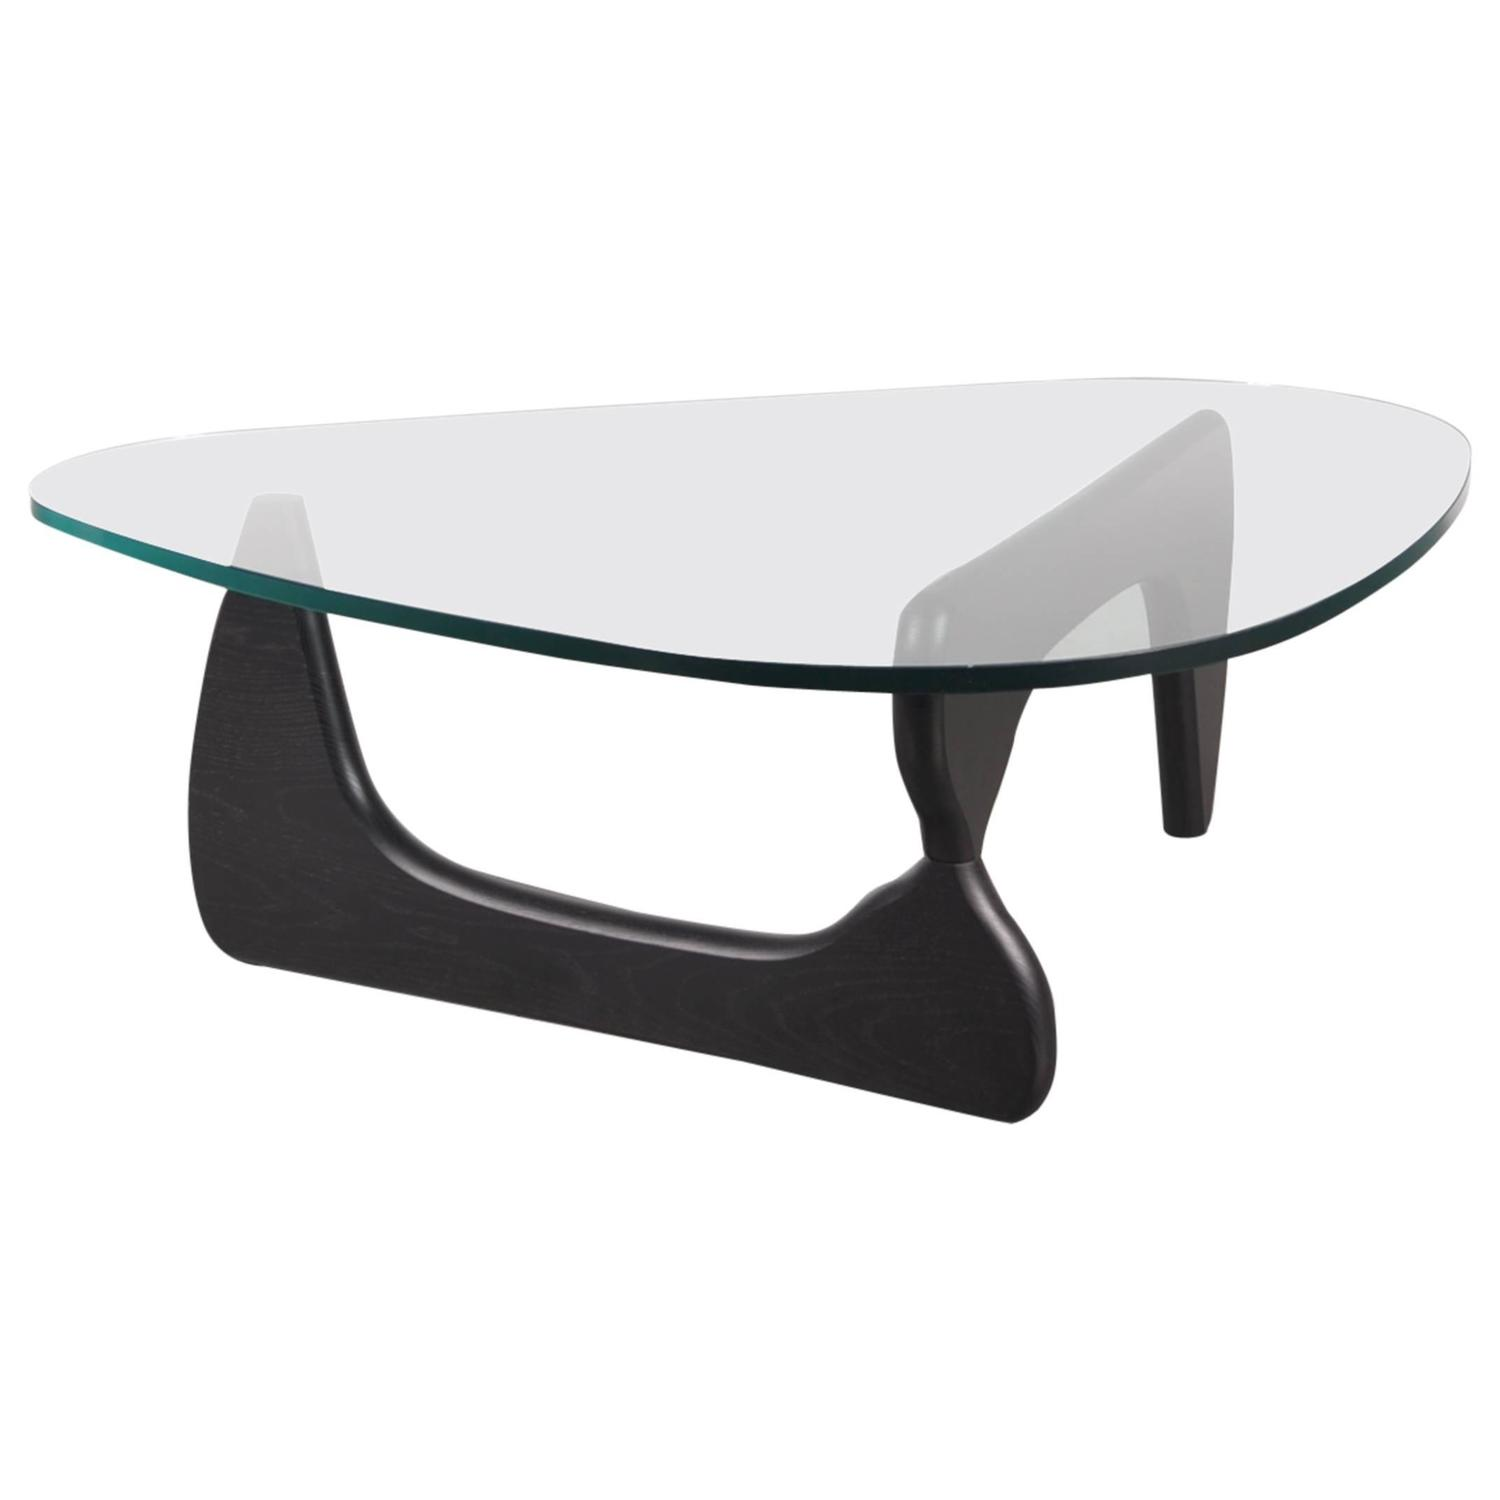 Sculptural Coffee Table By Isamu Noguchi For Herman Miller Usa Circa 1980 For Sale At 1stdibs